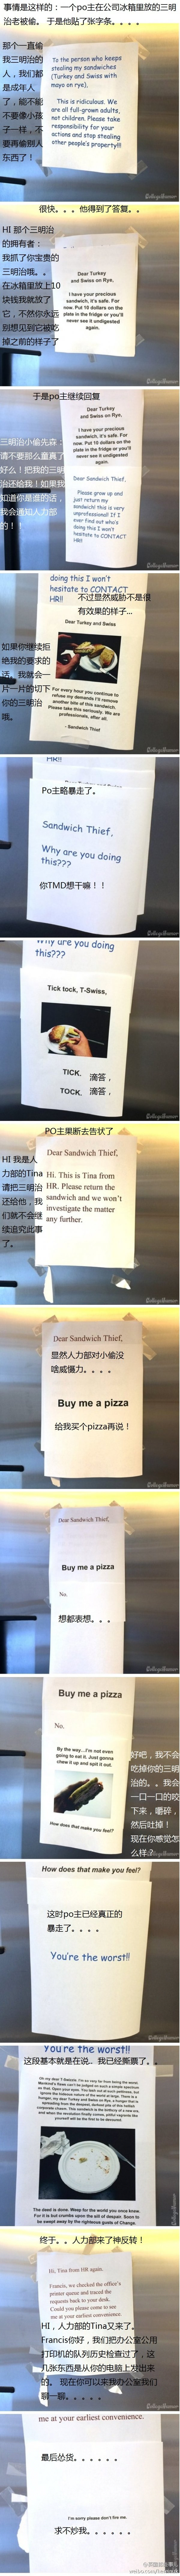 office-sandwich-thief-ransome-notes-exchange-hr